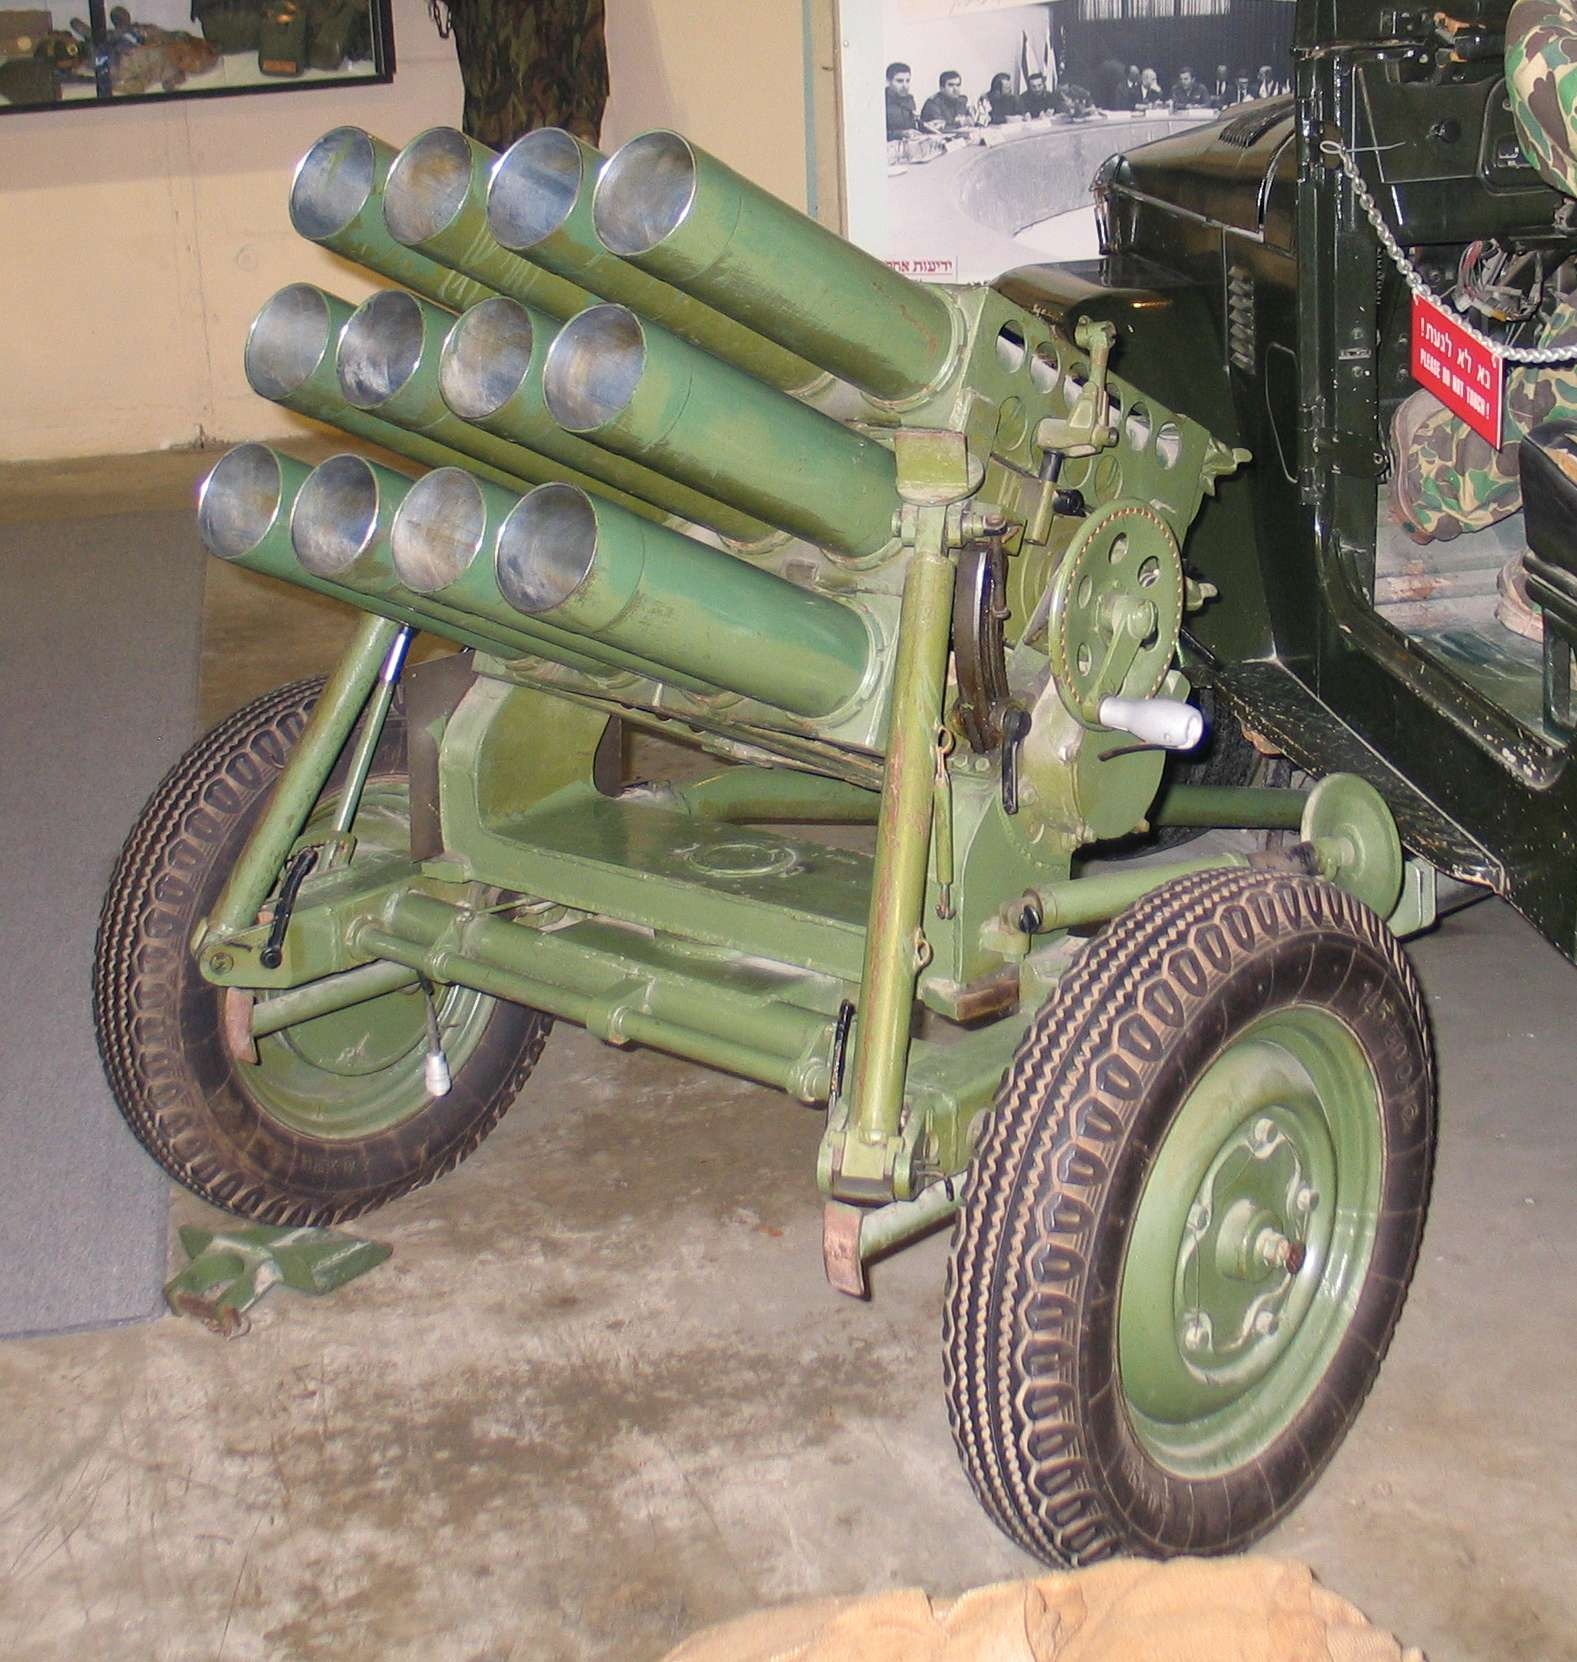 http://upload.wikimedia.org/wikipedia/commons/a/a6/107mm-type-63-batey-haosef-1.jpg